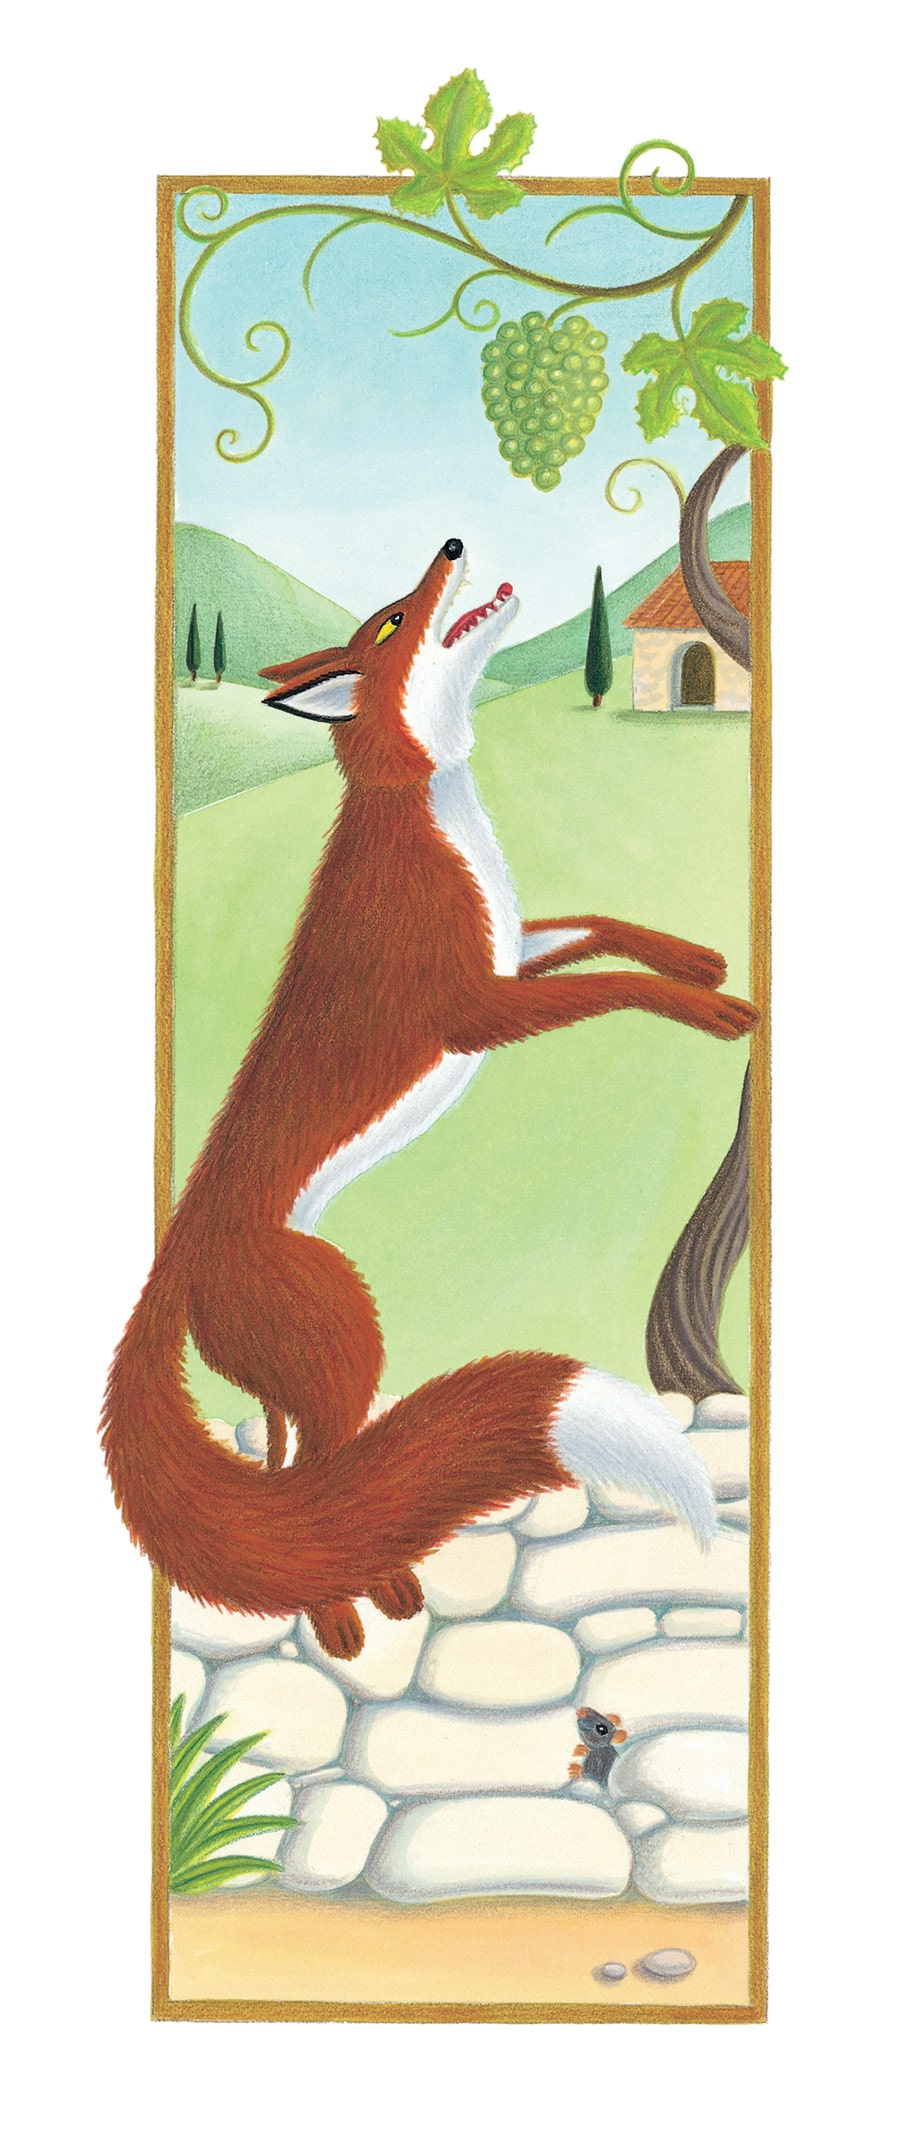 The Lion Classic Aesops Fables Gallery. Illustration 44 'The Fox and the Grapes' (Pixel dimensions available w923 x h2610)